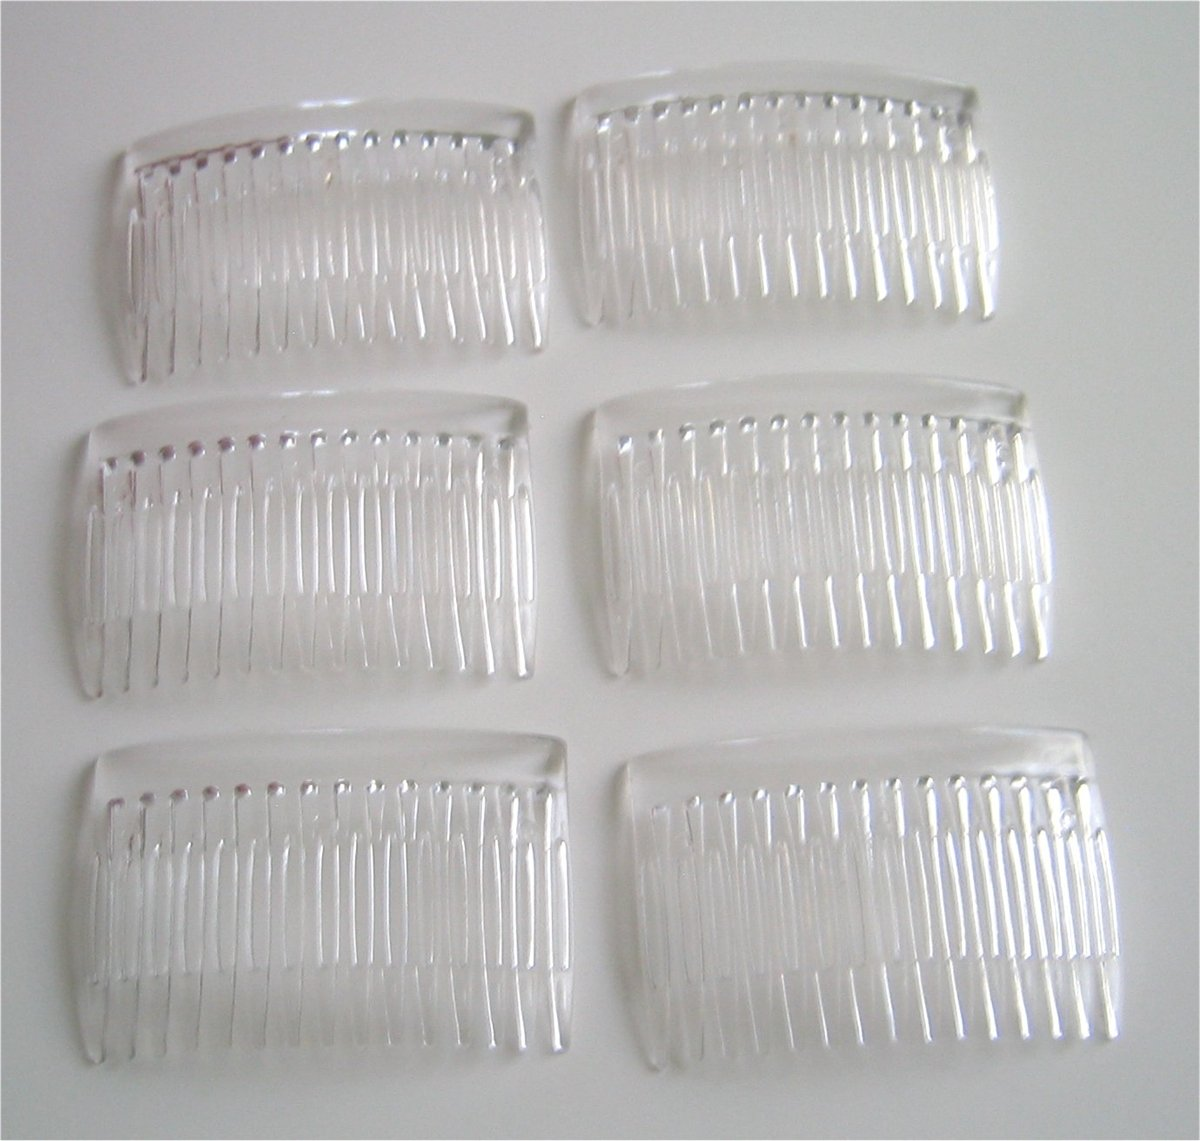 6 Clear Plastic Hair Combs Wedding Bridal Supplies DIY Accessory Veil Crafts Velvet Bridal